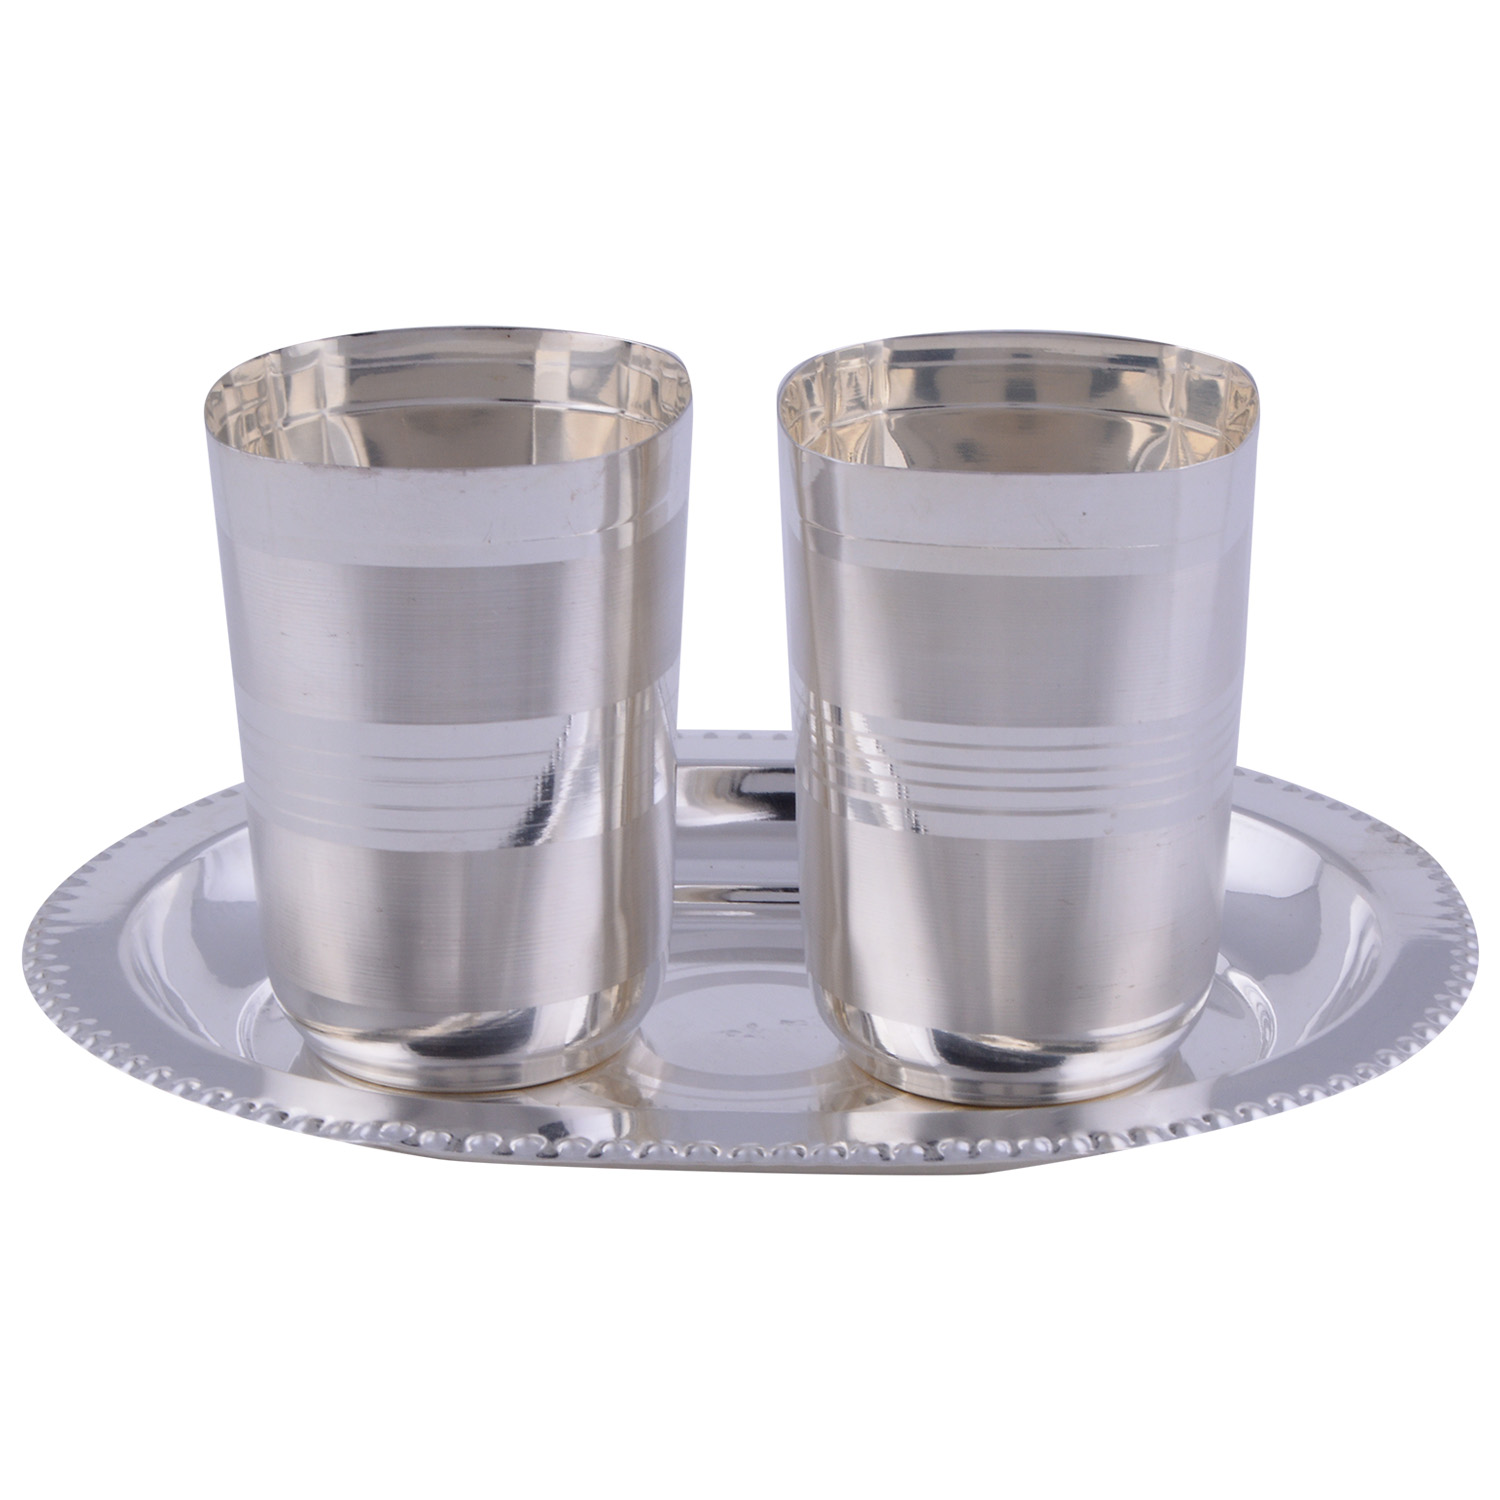 JK Silver Plated 2 Square Glow Glass Set 3 Pcs.